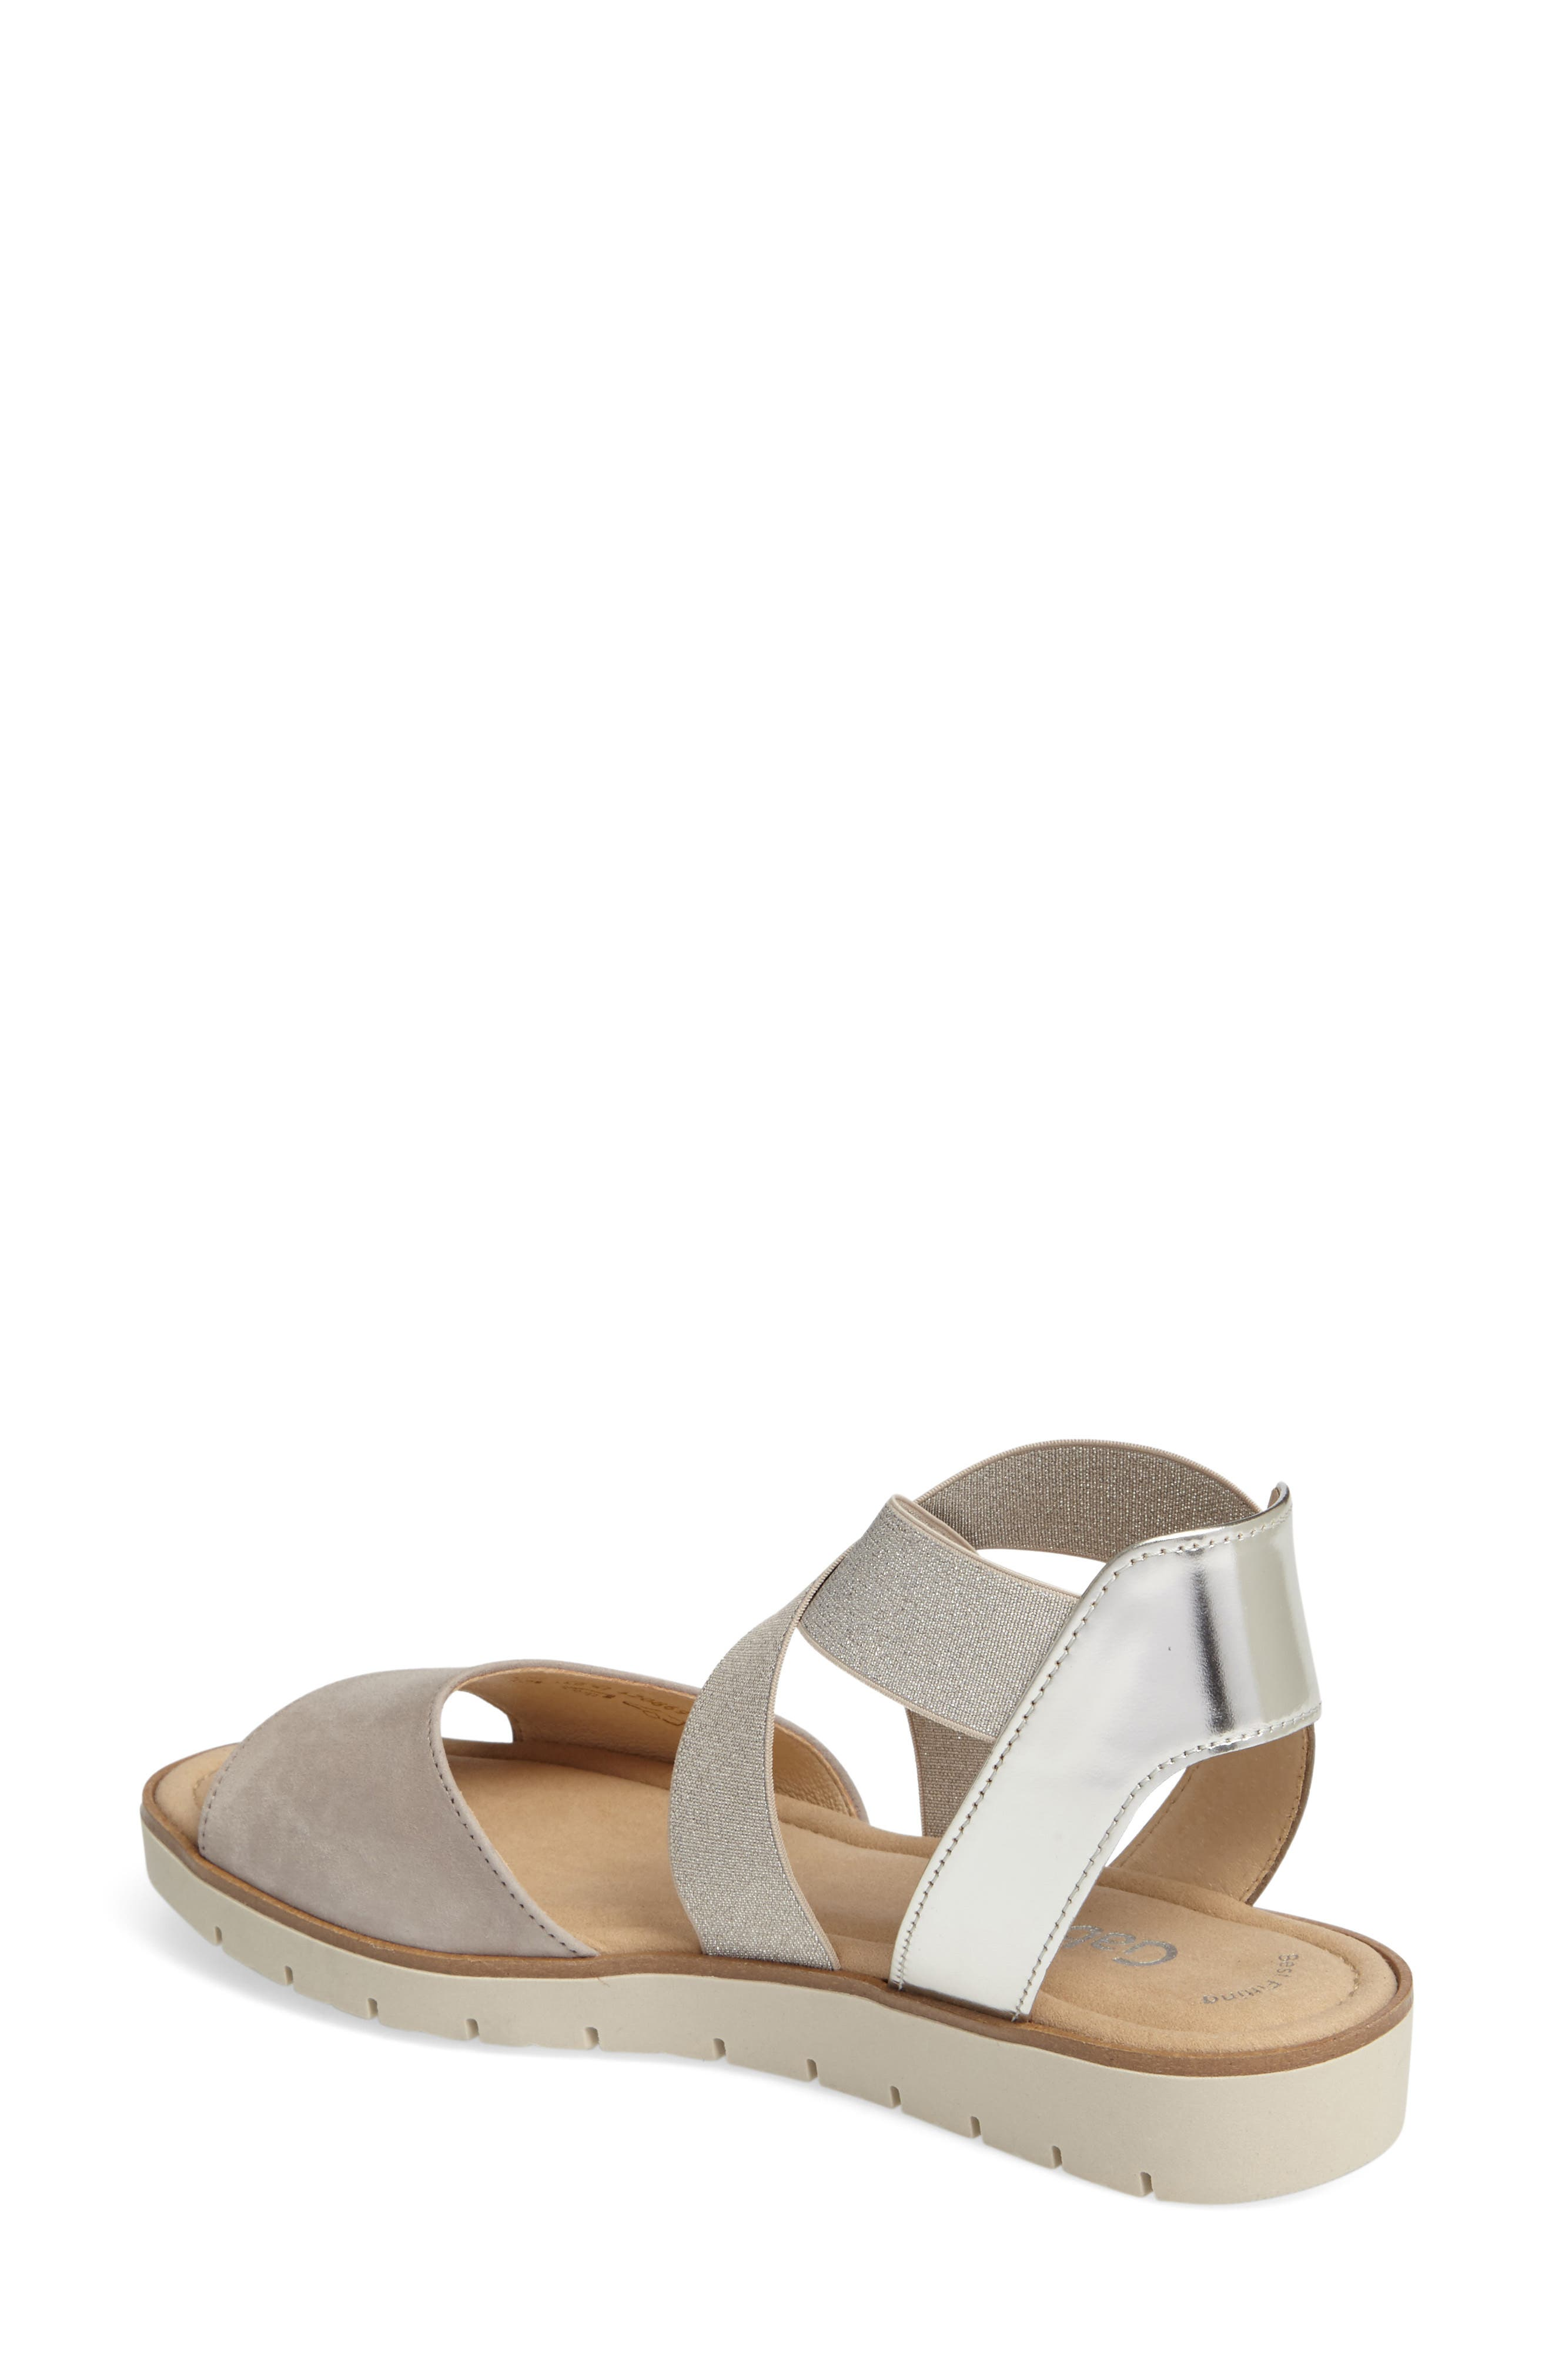 Strappy Sandal,                             Alternate thumbnail 2, color,                             Beige Leather